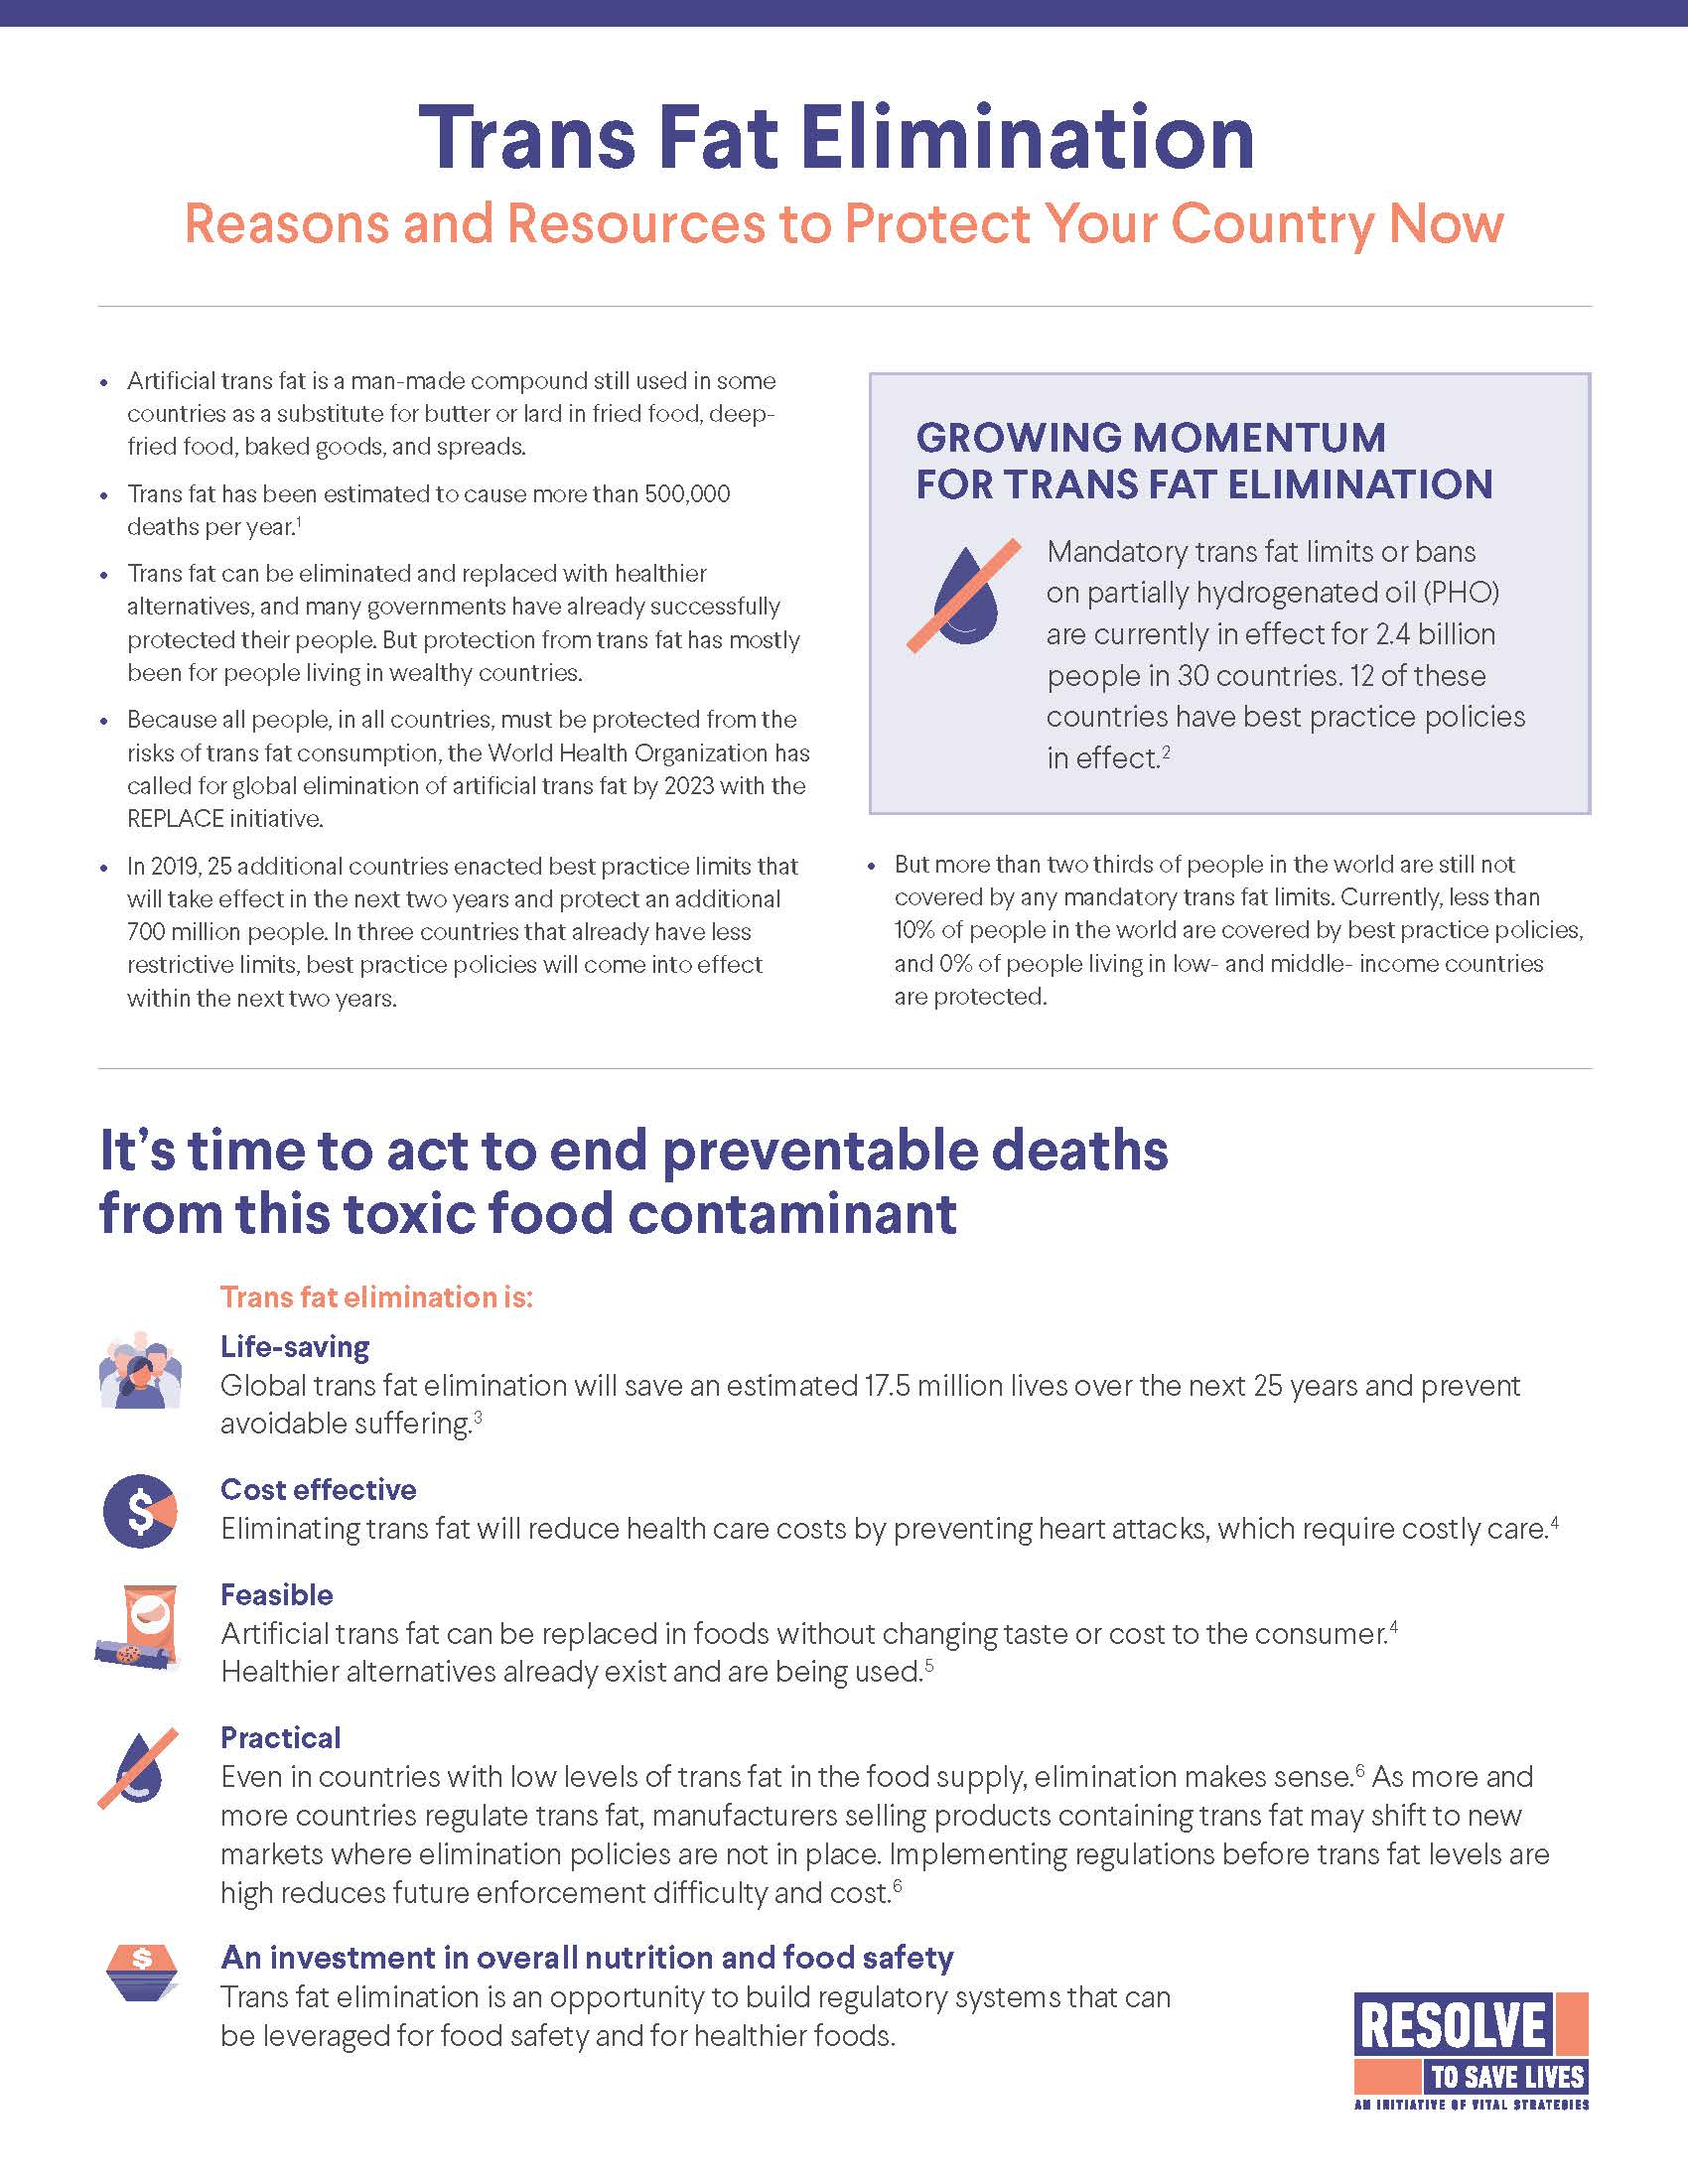 Fact sheet: Trans Fat Elimination: Reasons and Resources to Protect Your Country Now